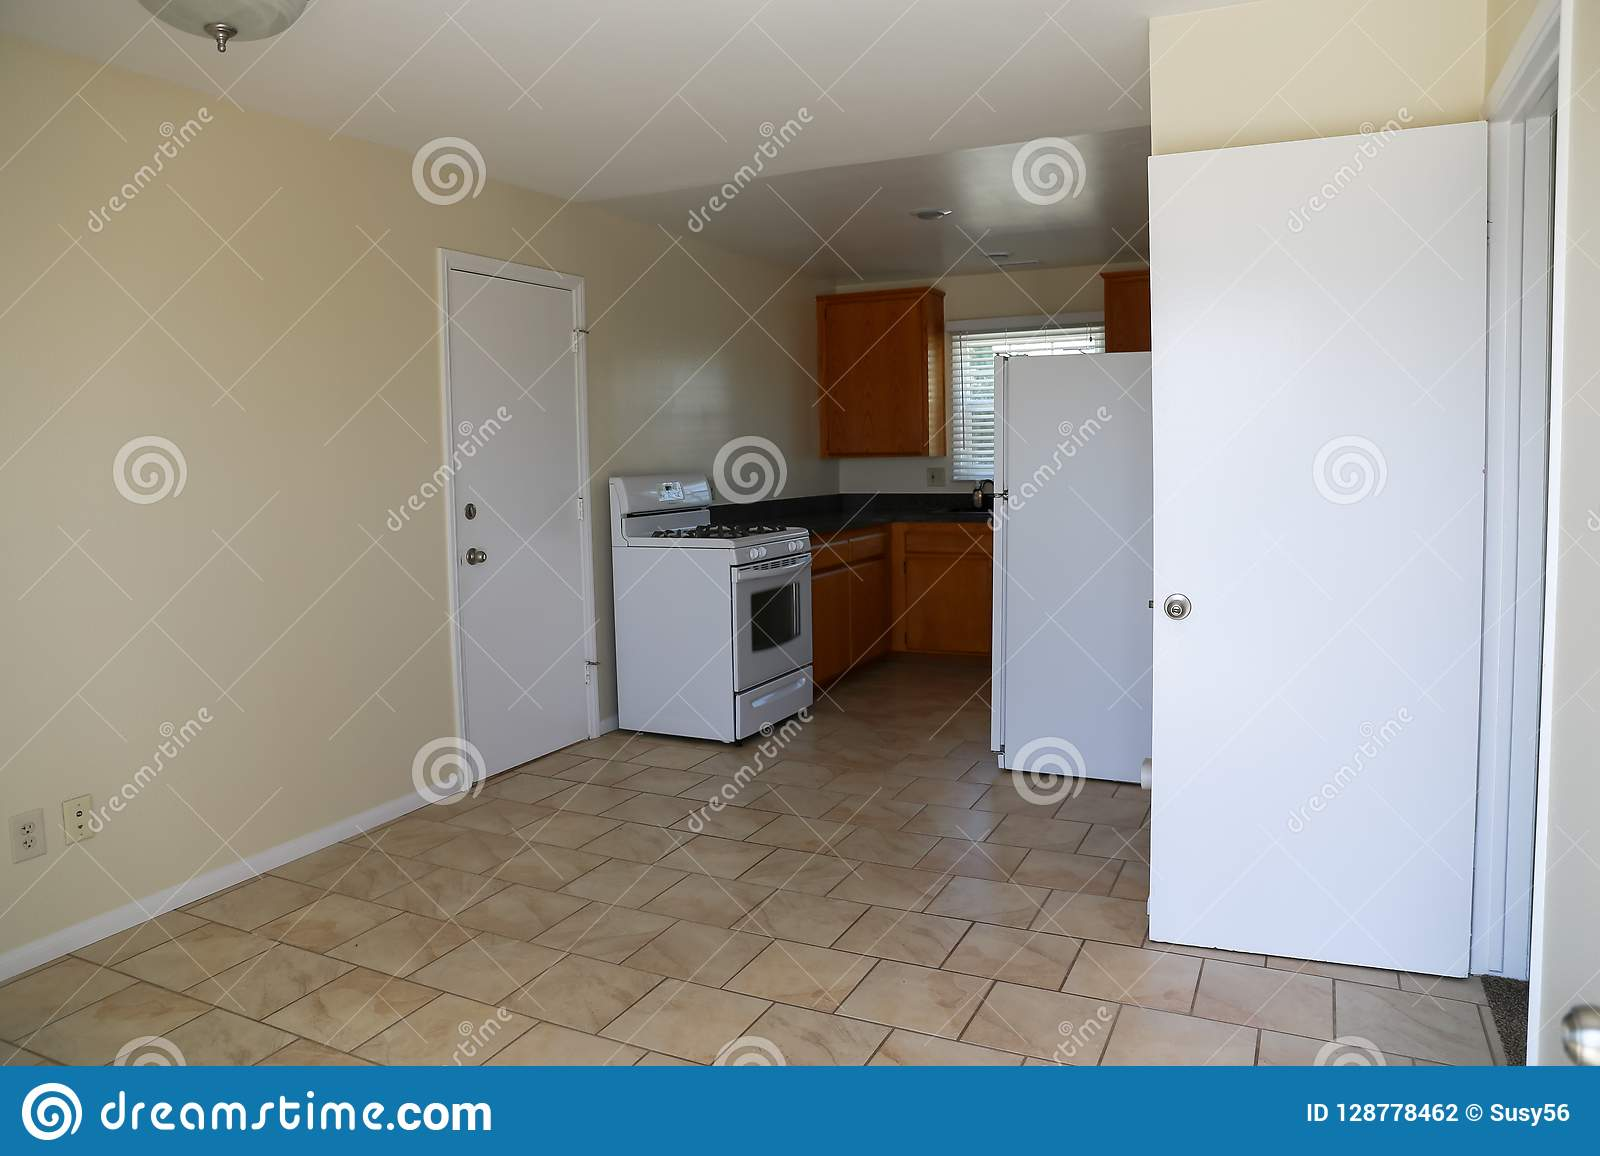 Simple Kitchen With Range Cabinets Refrigerator Tile Floor Stock Photo Image Of Vacant Navajo 128778462